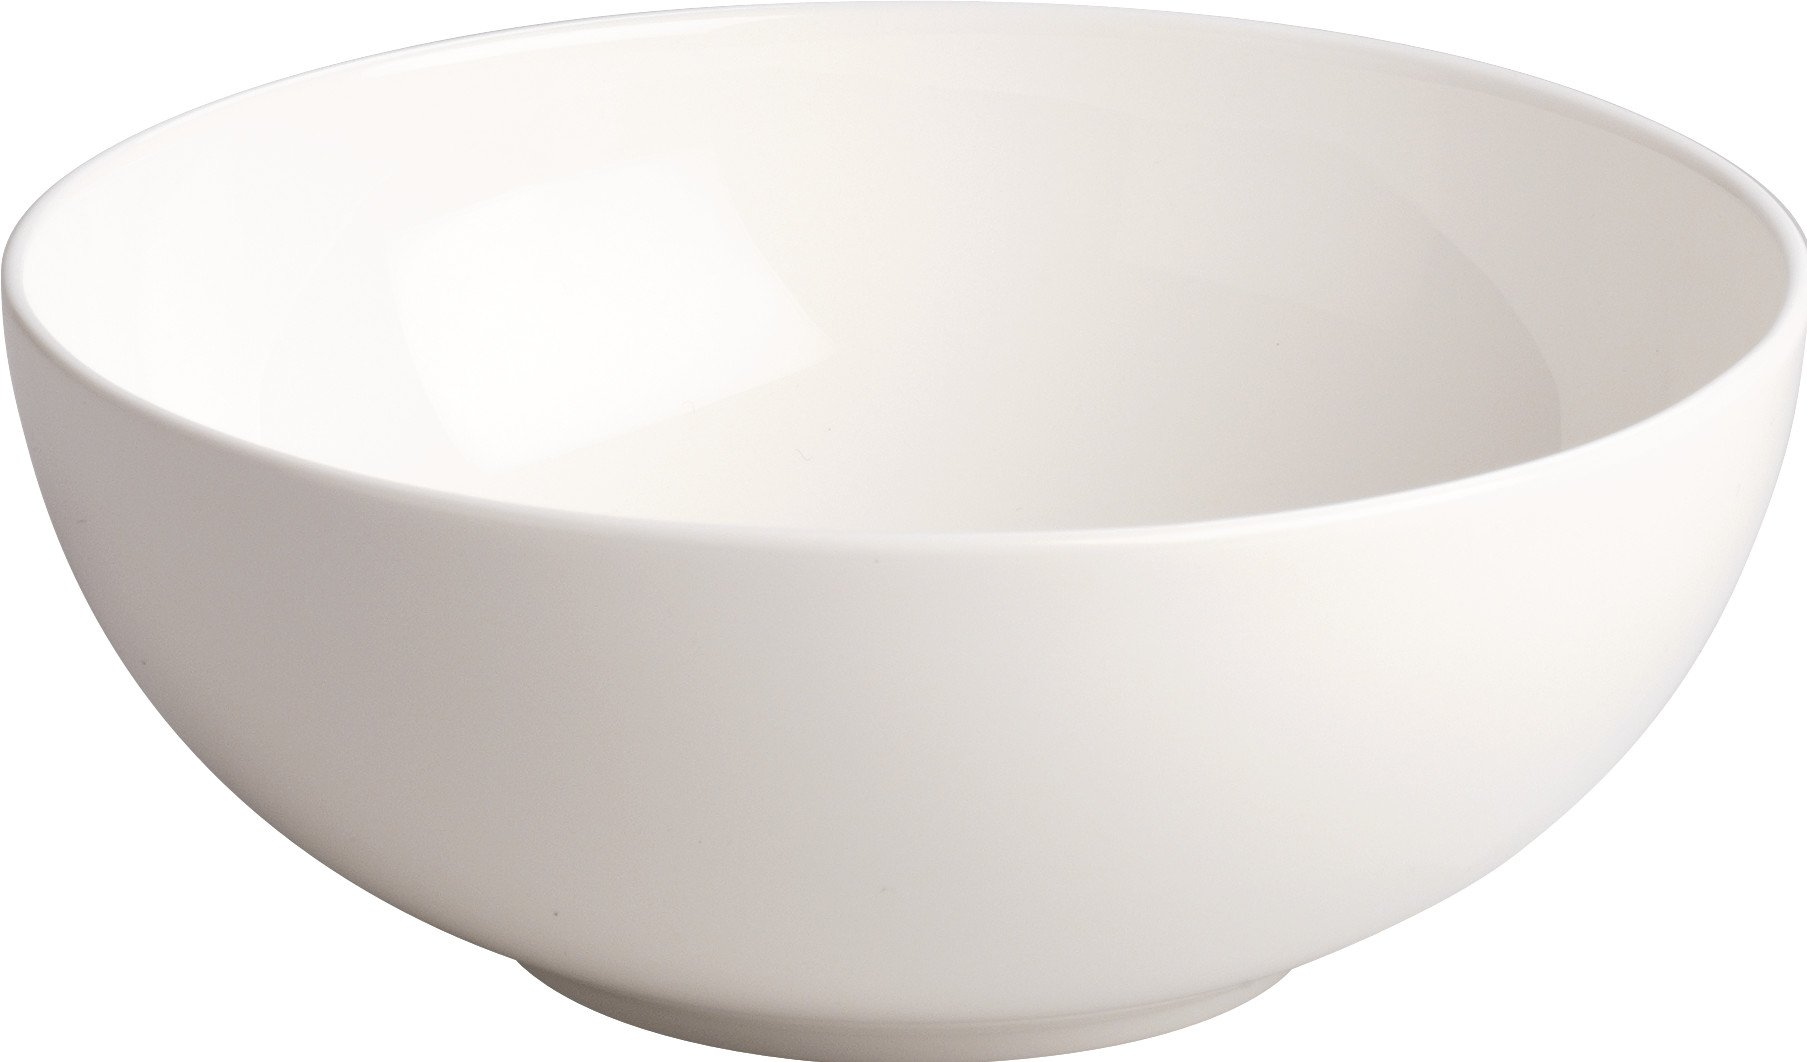 Immagine di Alessi All Time piatto per porridge ø 16,5 cm